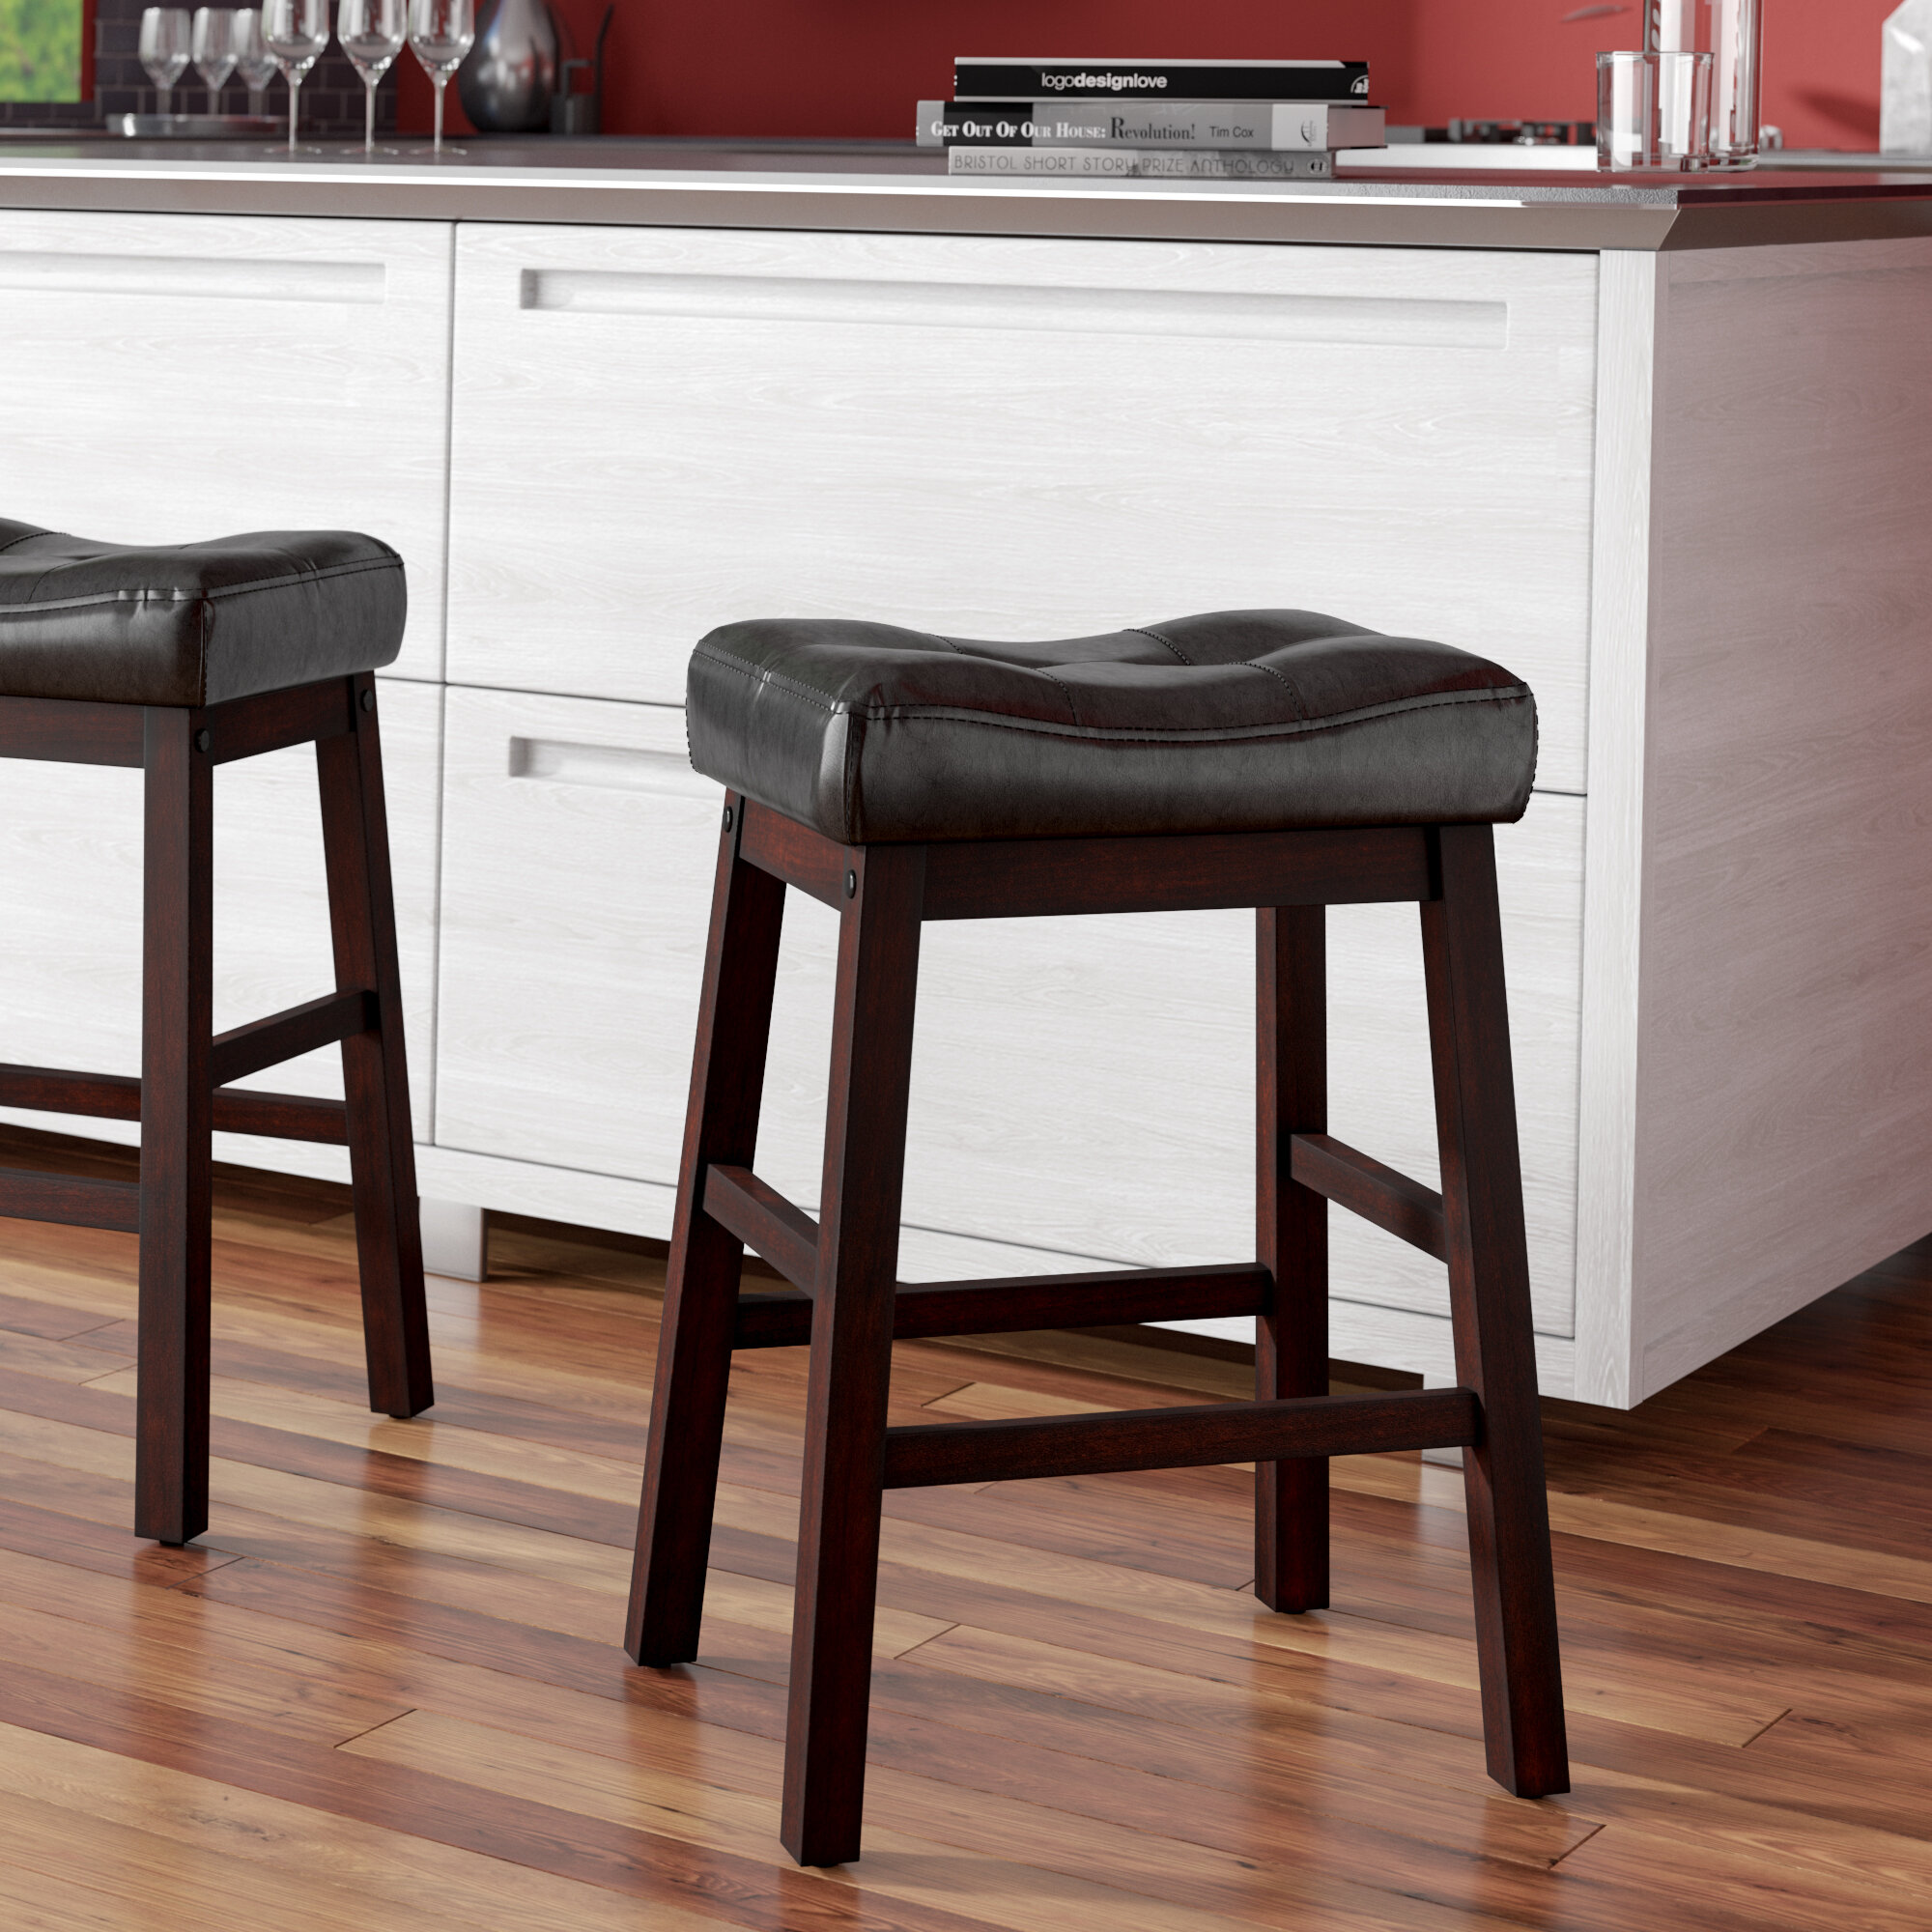 Swell Goberd 24 Bar Stools Pdpeps Interior Chair Design Pdpepsorg